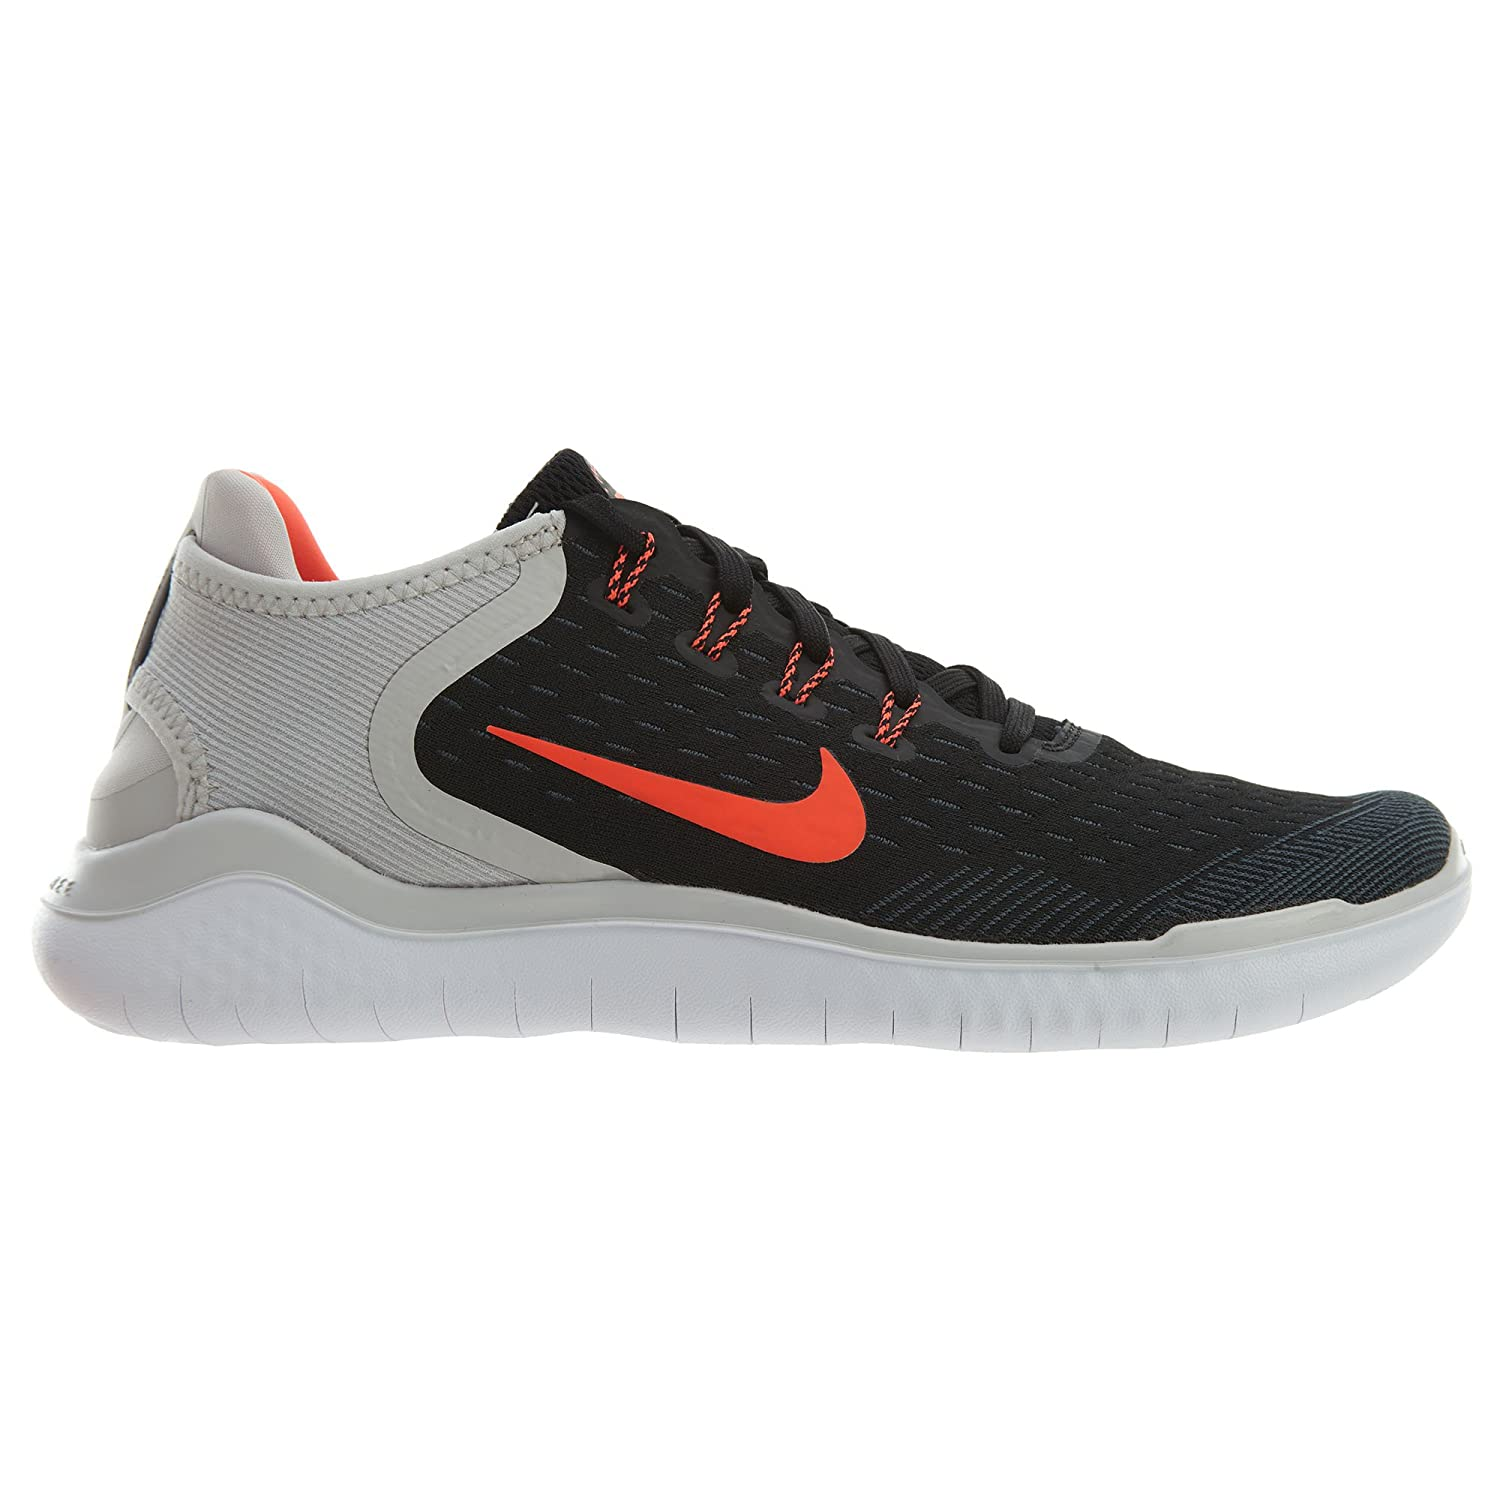 12540f16ce33 ... discount code for amazon nike mens free rn flyknit 2018 running shoe  road running 48654 1ed64